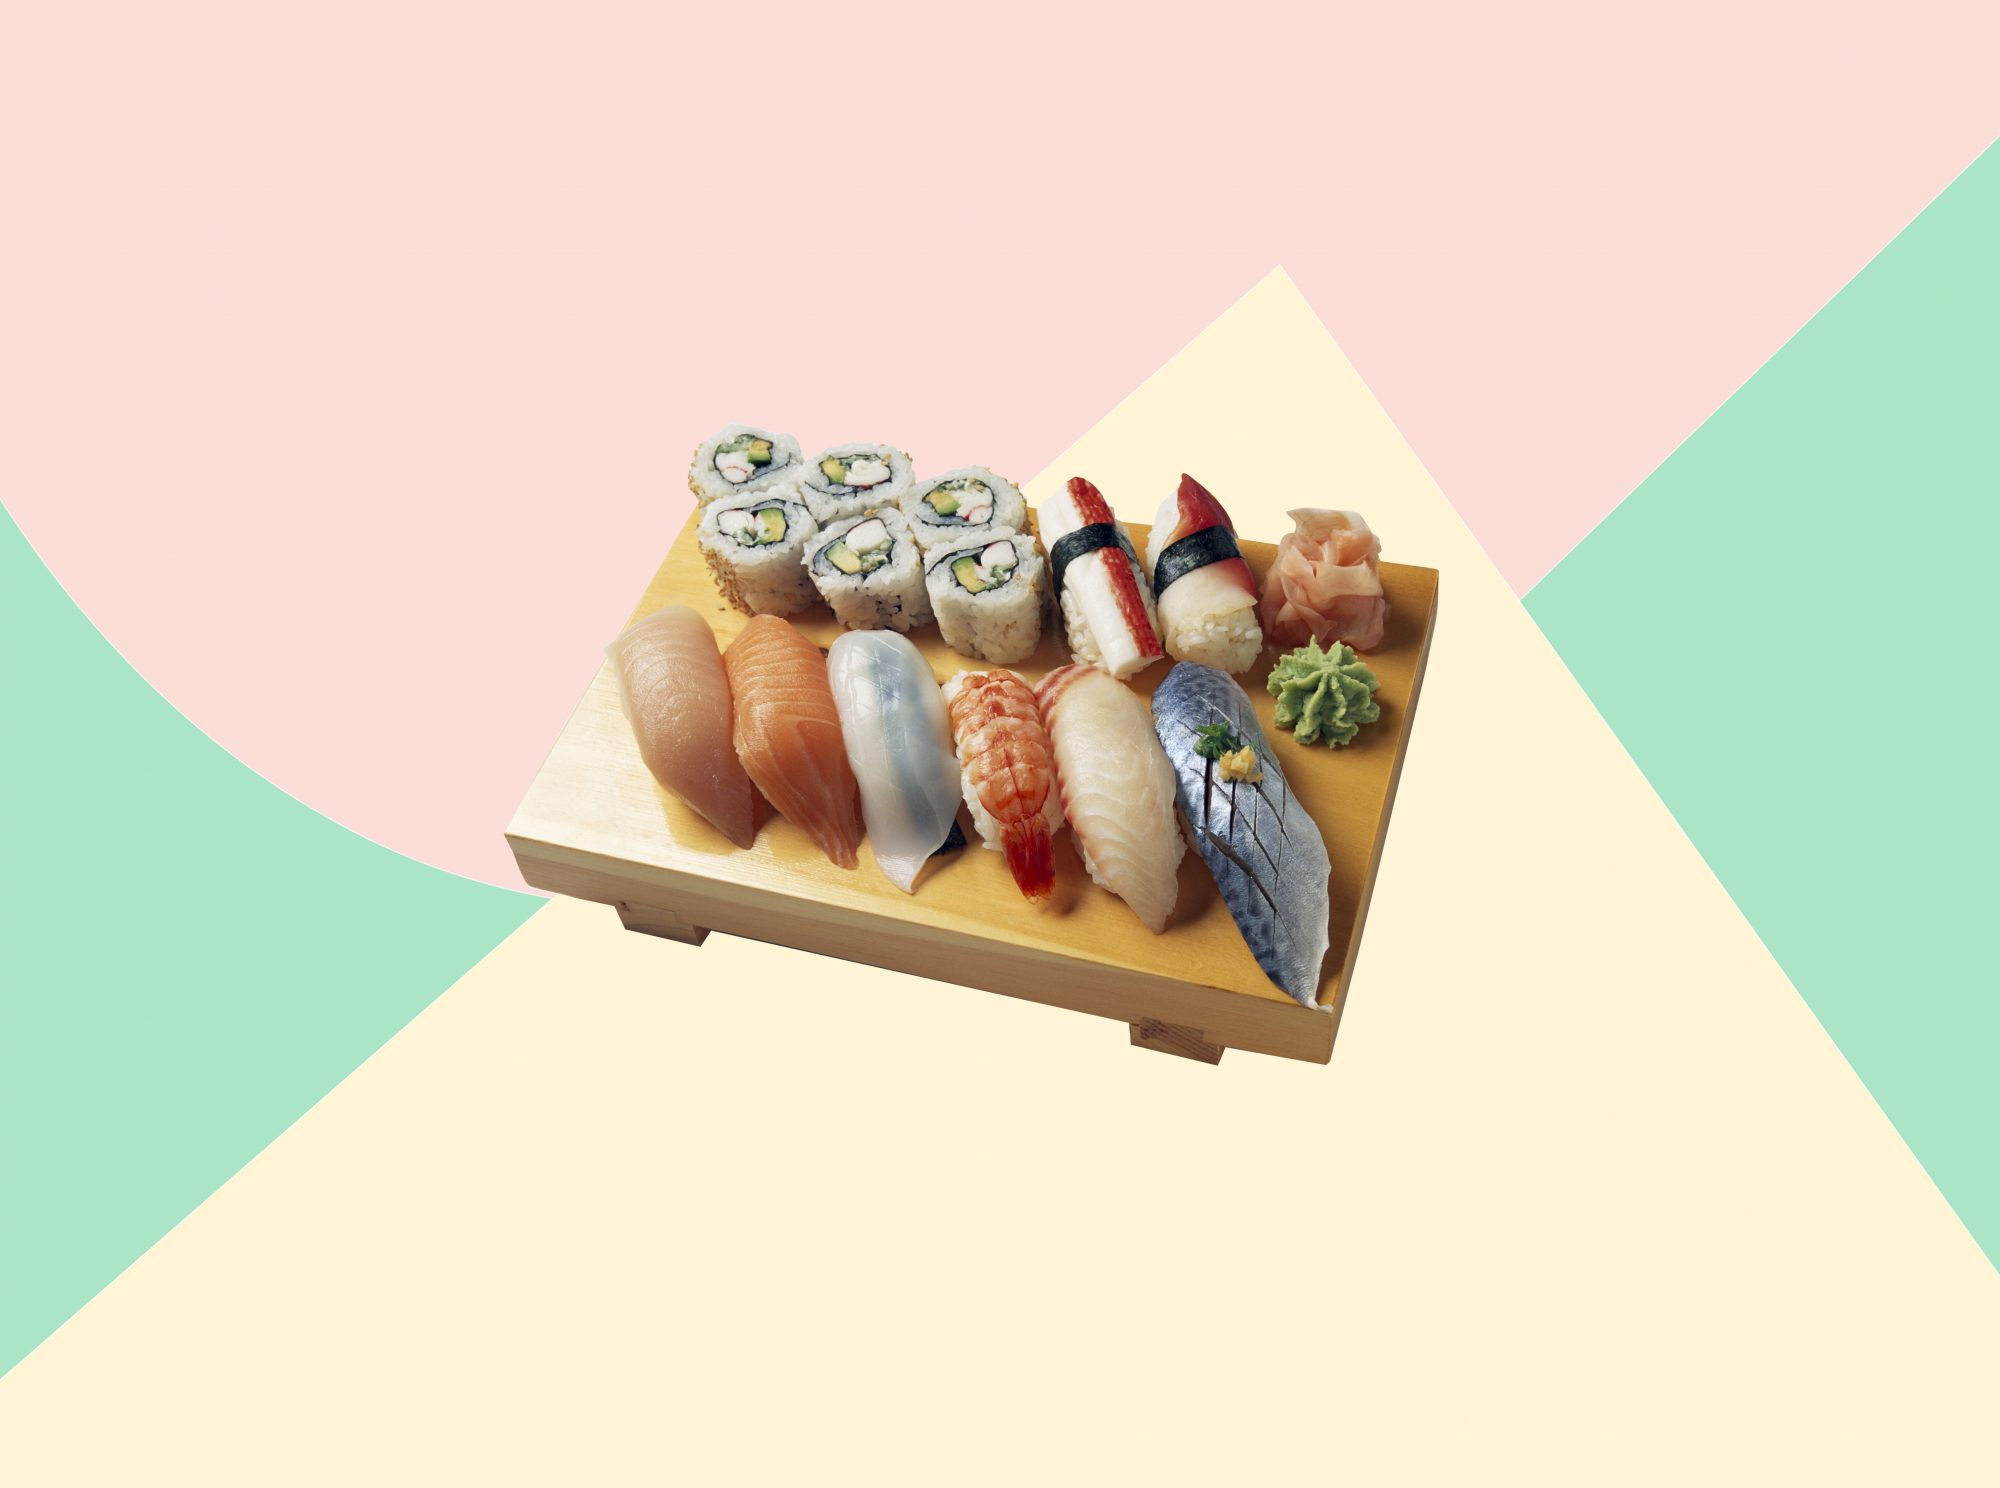 How to eat sushi the right way, according to a sushi chef